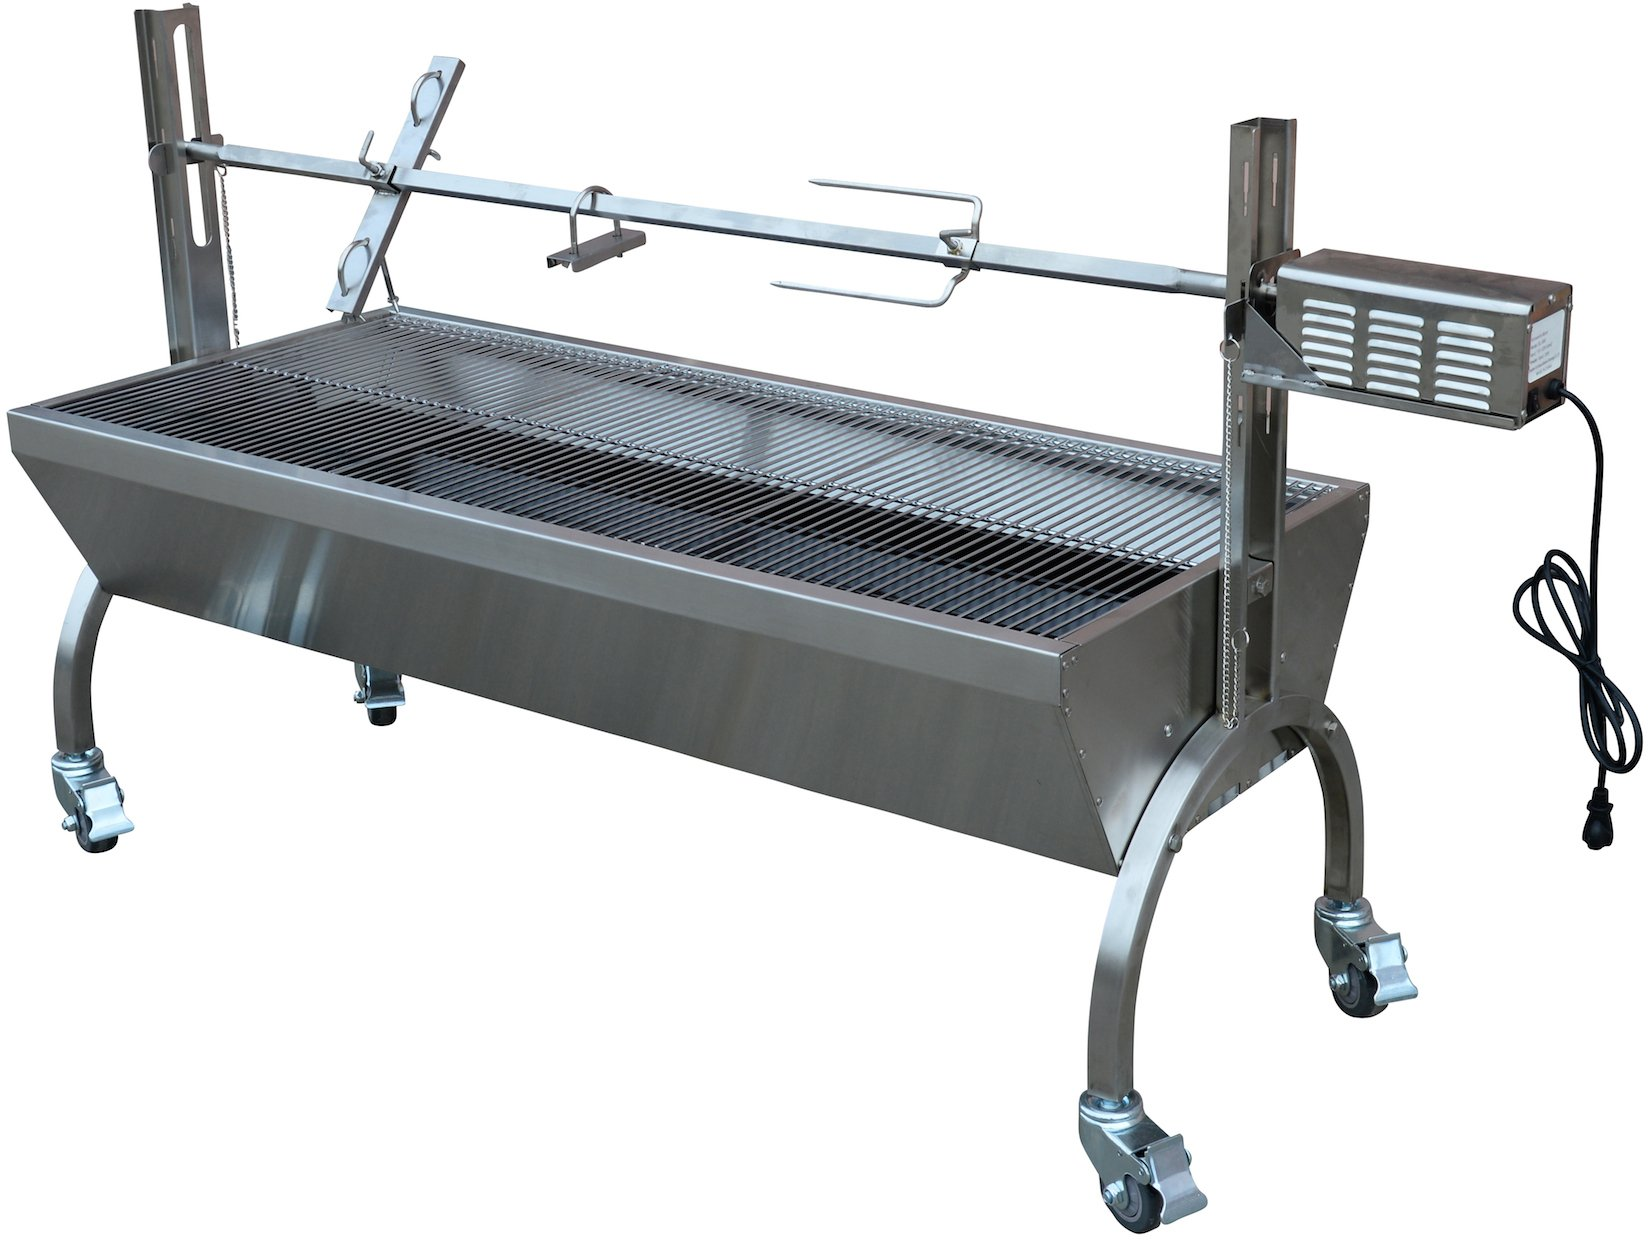 Rotisserie Grill Roaster Stainless Steel 13W 88LBS capacity BBQ charcoal pig by Titan Attachments (Image #1)